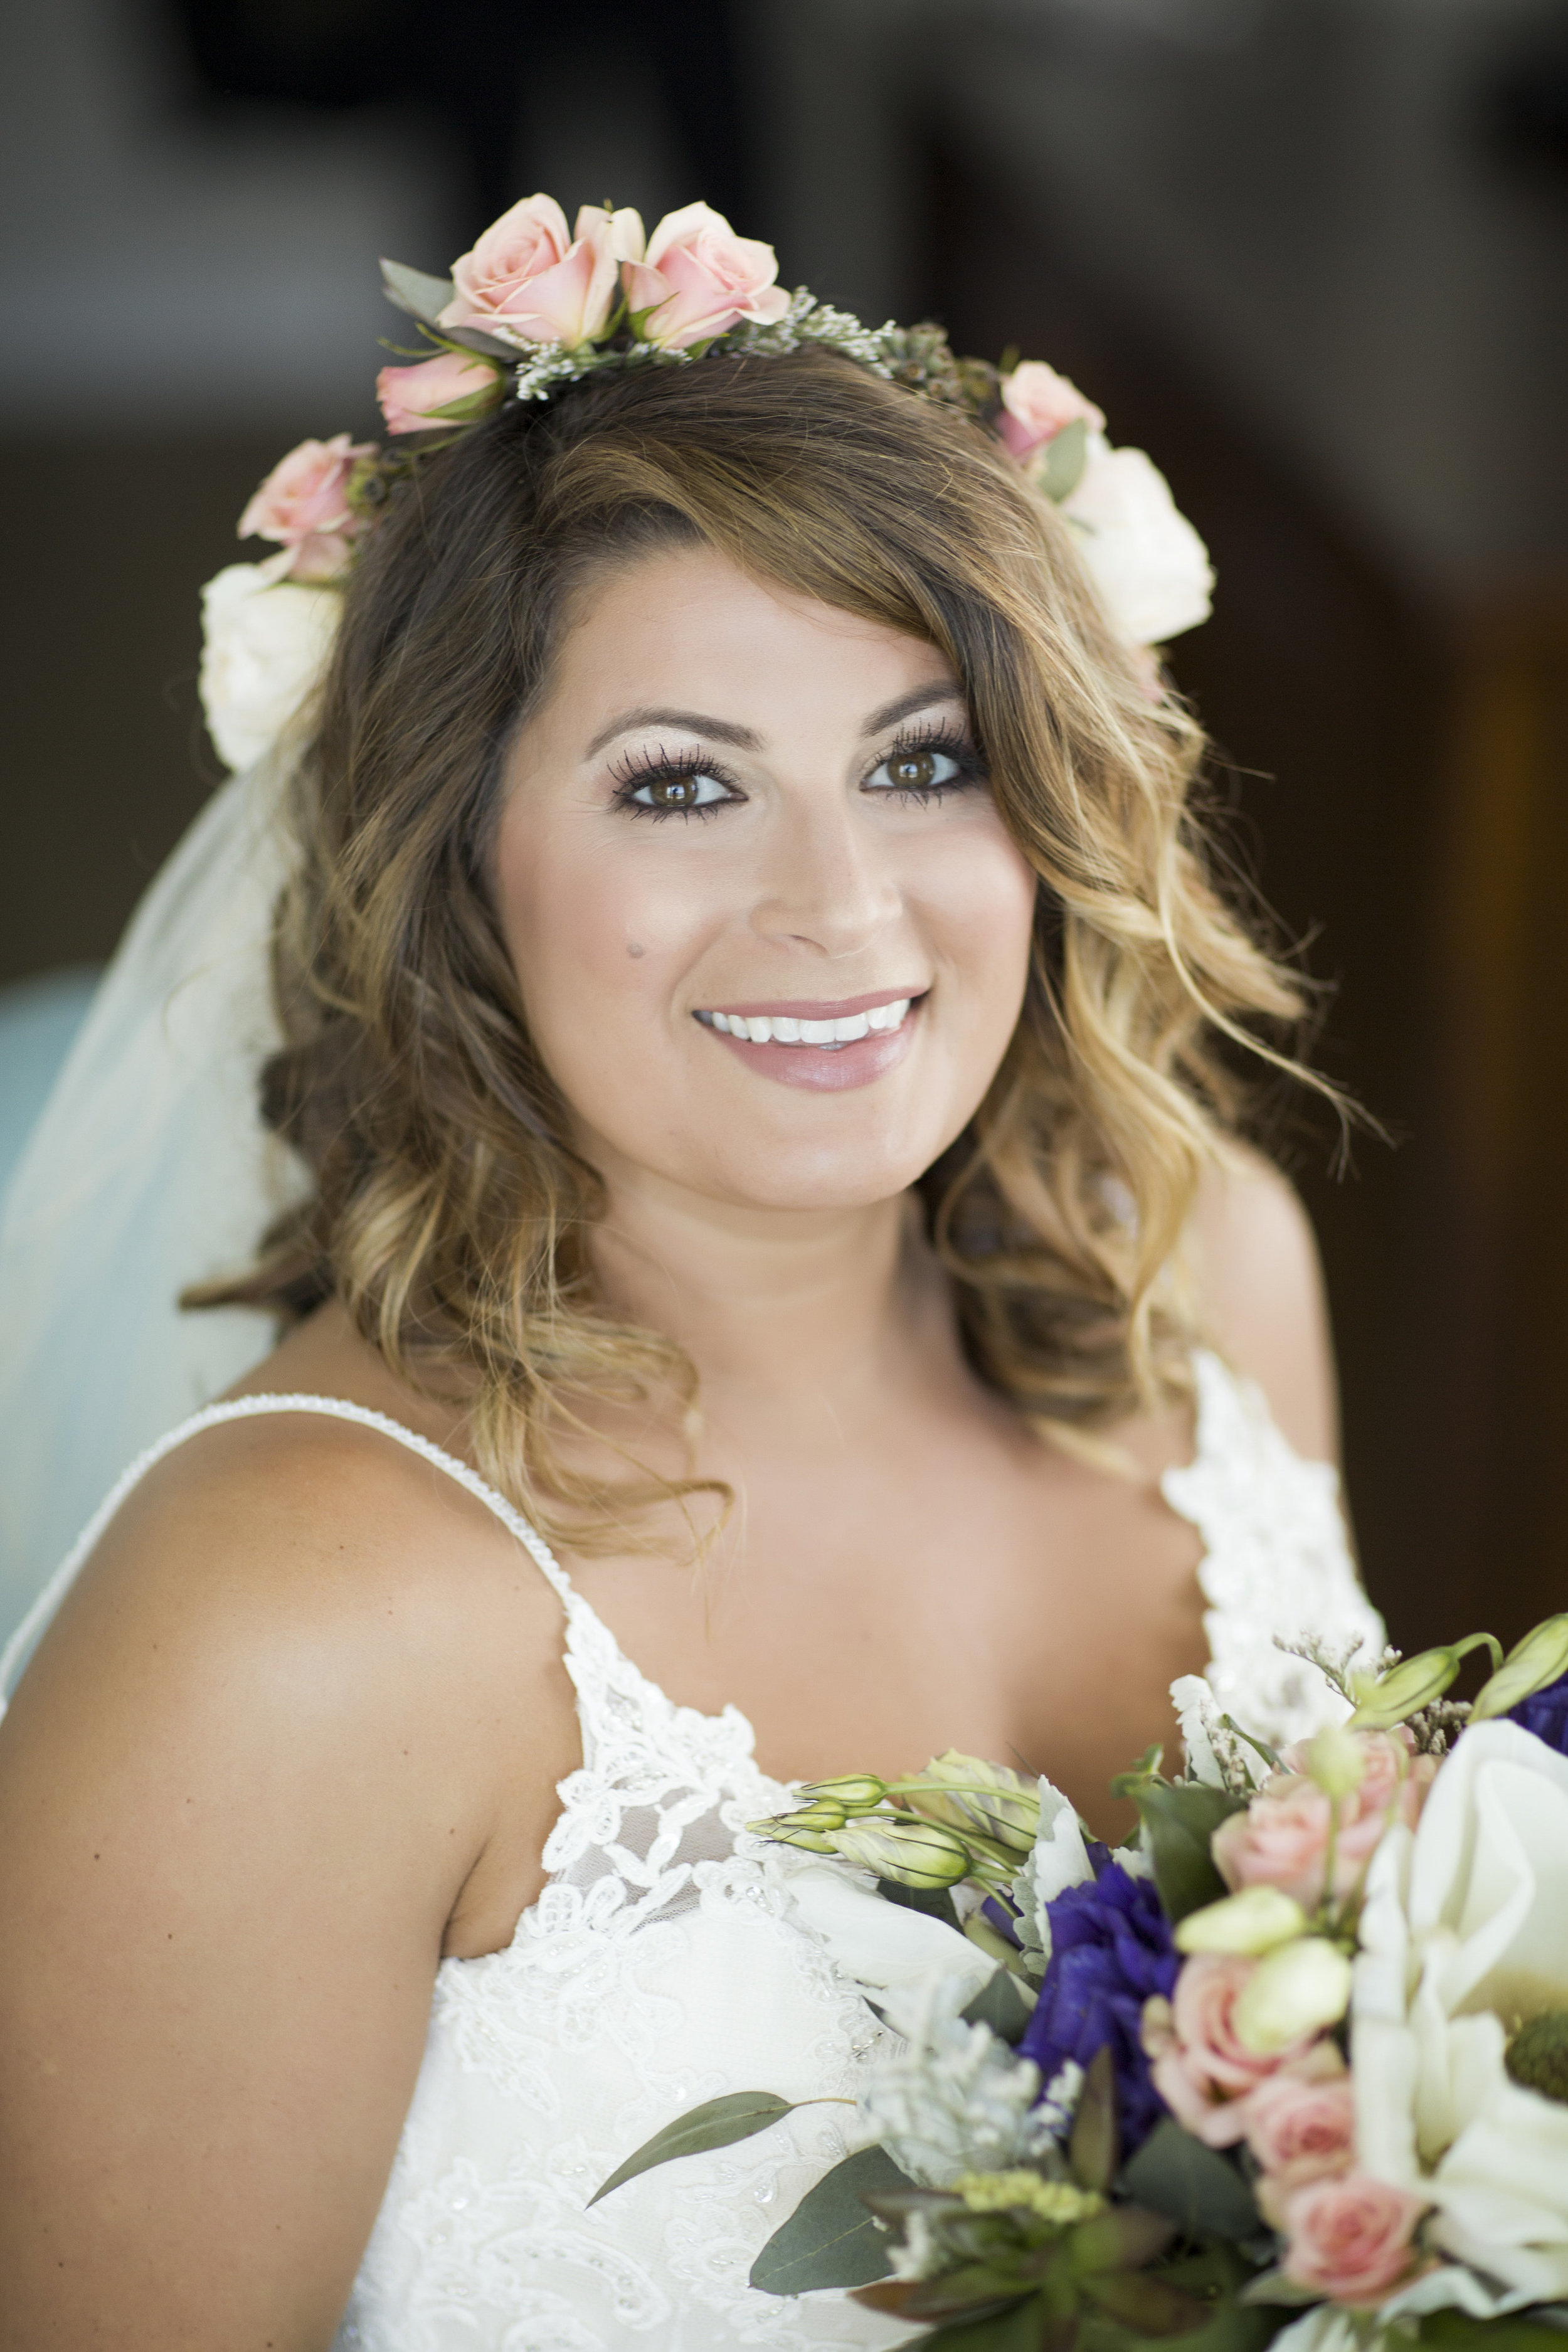 Floral Crown on Bride on Wedding Day by Fiore of Pensacola + Grace and Serendipity + Aislinn Kate